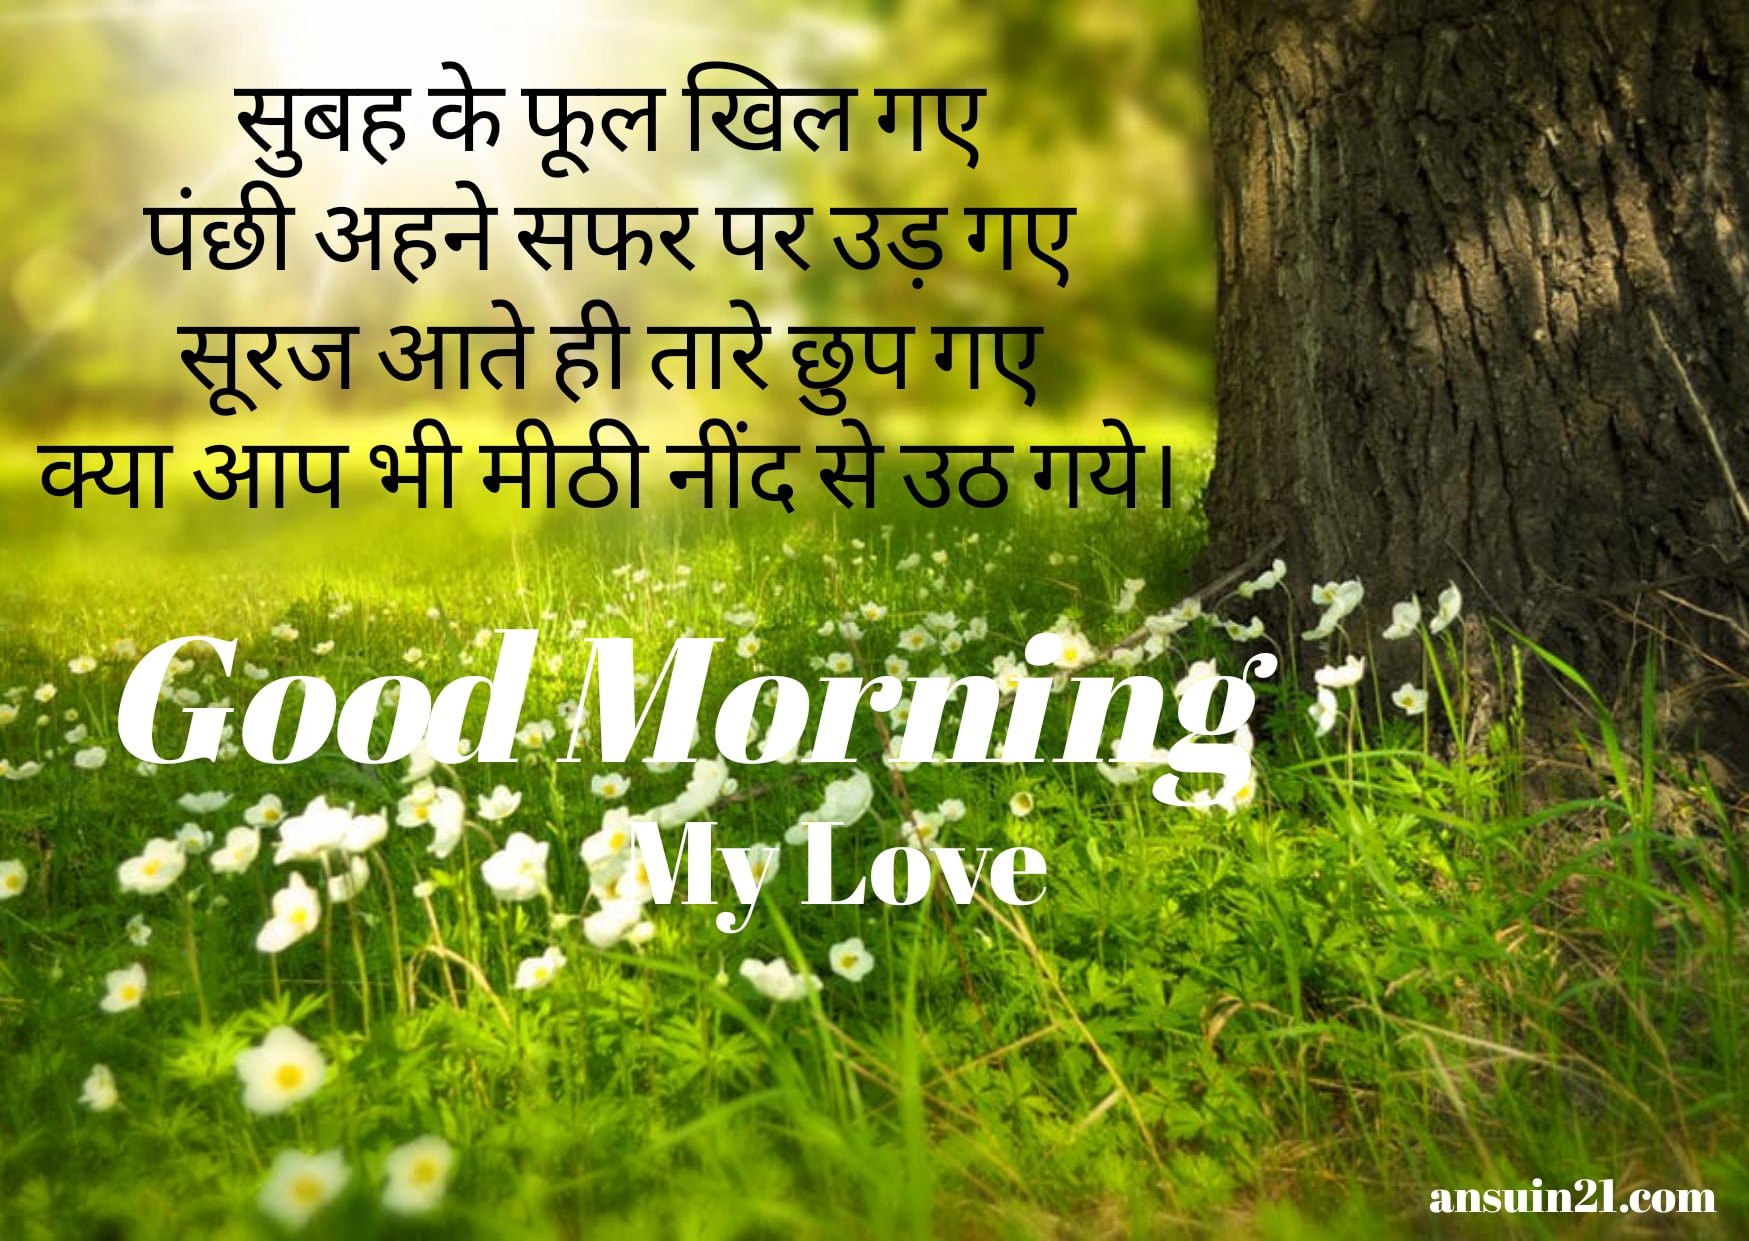 Good Morning Images for Wife Hindi, Good Morning Quotes wishes for Wife & loverGood Morning Images for Wife Hindi, Good Morning Quotes wishes for Wife & loverGood Morning Images for Wife Hindi, Good Morning Quotes wishes for Wife & loverGood Morning Images for Wife Hindi, Good Morning Quotes wishes for Wife & loverGood Morning Images for Wife Hindi, Good Morning Quotes wishes for Wife & loverGood Morning Images for Wife Hindi, Good Morning Quotes wishes for Wife & loverGood Morning Images for Wife Hindi, Good Morning Quotes wishes for Wife & loverGood Morning Images for Wife Hindi, Good Morning Quotes wishes for Wife & loverGood Morning Images for Wife Hindi, Good Morning Quotes wishes for Wife & loverGood Morning Images for Wife Hindi, Good Morning Quotes wishes for Wife & loverGood Morning Images for Wife Hindi, Good Morning Quotes wishes for Wife & loverGood Morning Images for Wife Hindi, Good Morning Quotes wishes for Wife & loverGood Morning Images for Wife Hindi, Good Morning Quotes wishes for Wife & loverGood Morning Images for Wife Hindi, Good Morning Quotes wishes for Wife & loverGood Morning Images for Wife Hindi, Good Morning Quotes wishes for Wife & loverGood Morning Images for Wife Hindi, Good Morning Quotes wishes for Wife & lover